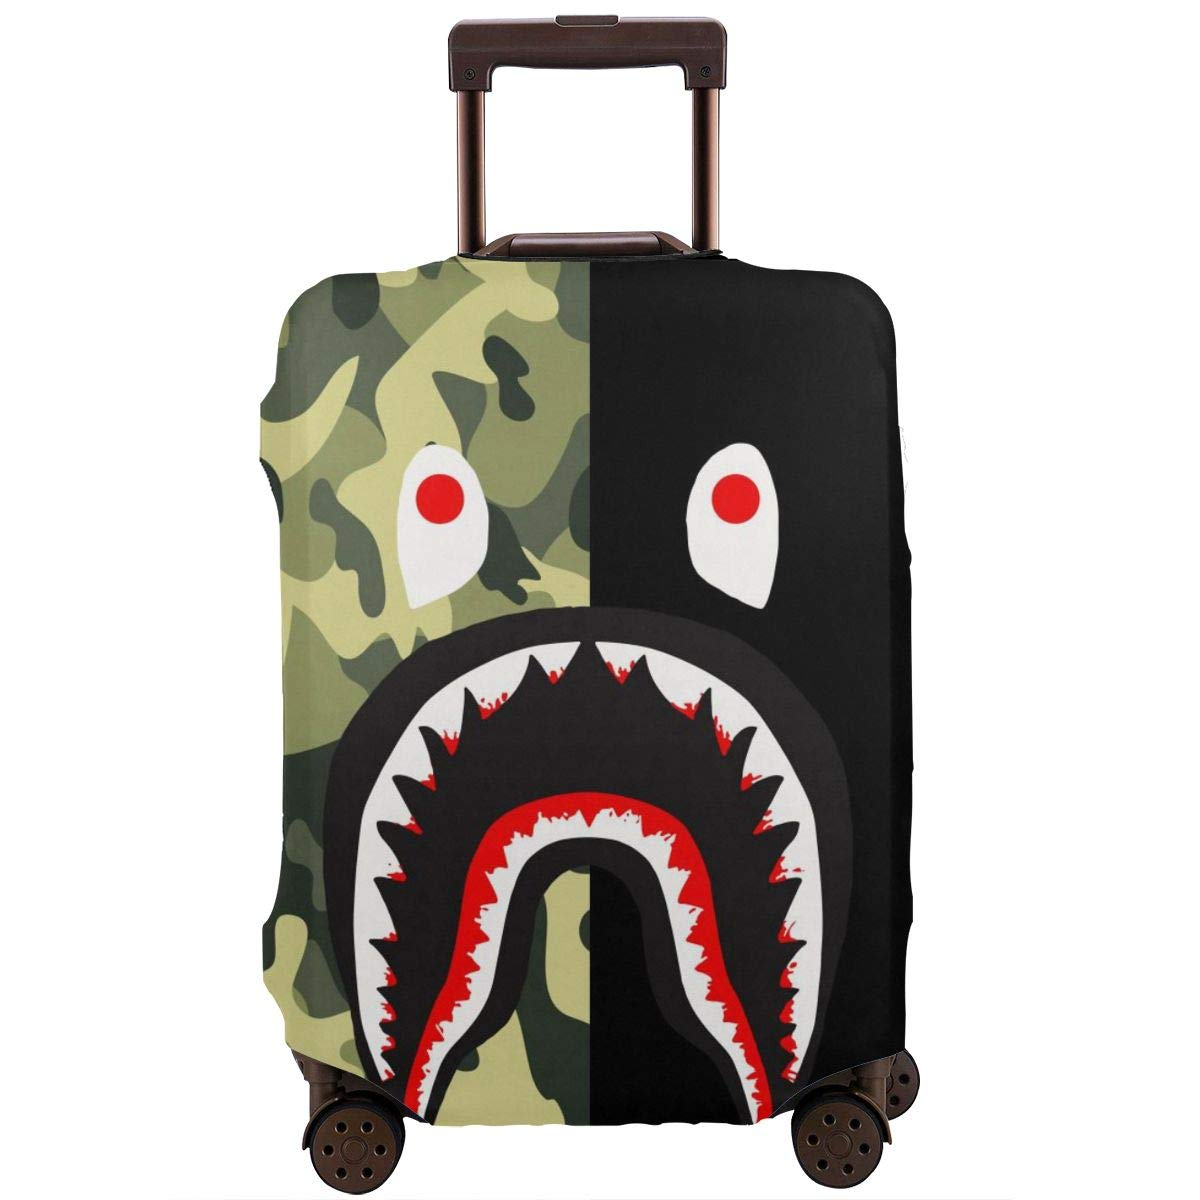 Travel Luggage Cover Suitcase Protector Fits 18-32 Inch Luggage Bape Blood Shark Half Green Camo